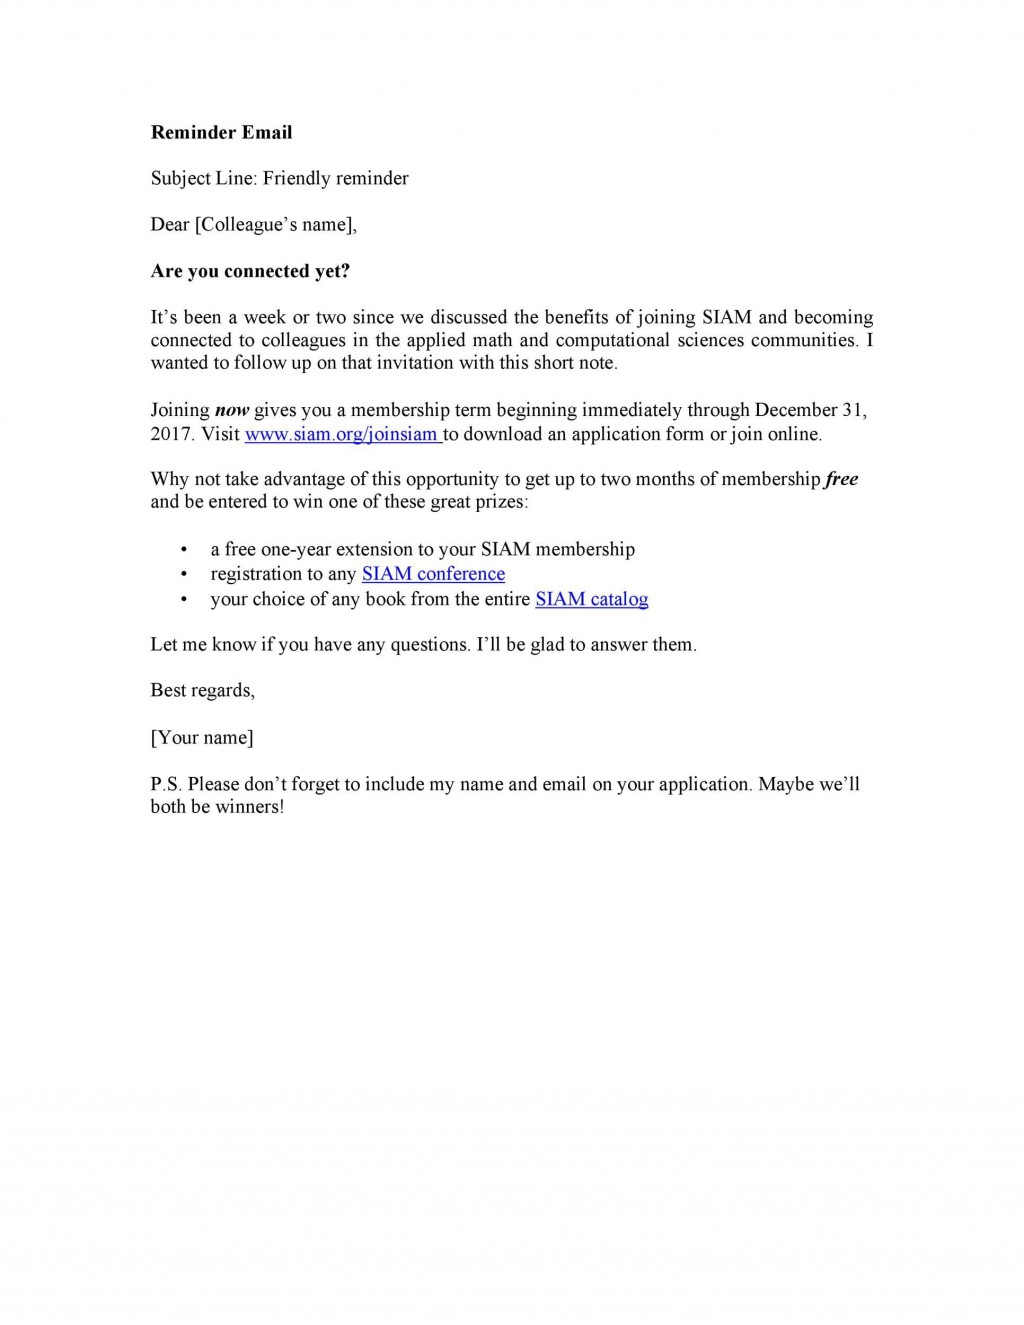 005 Stunning Follow Up Email Template Request Design Large